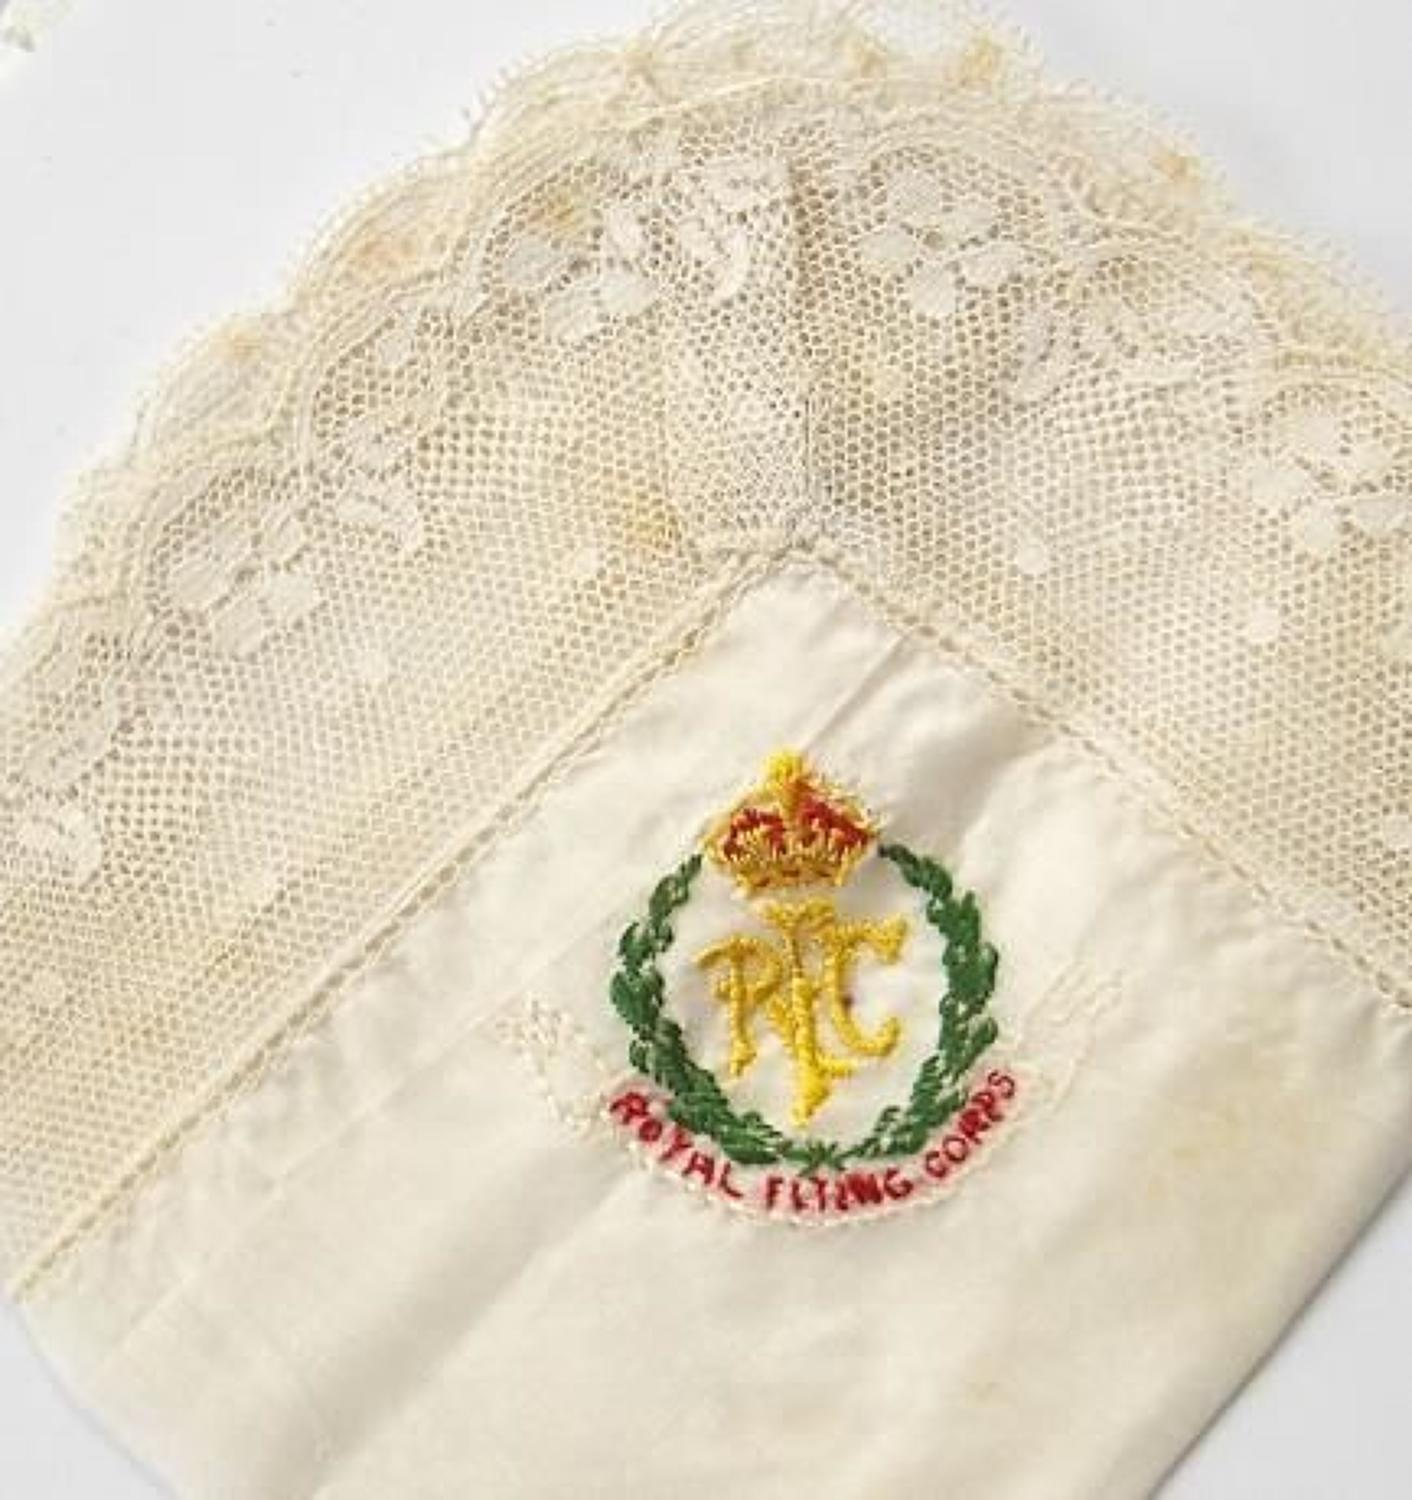 WW1 Royal Flying Corps RFC Silk Embroidered Handkerchief